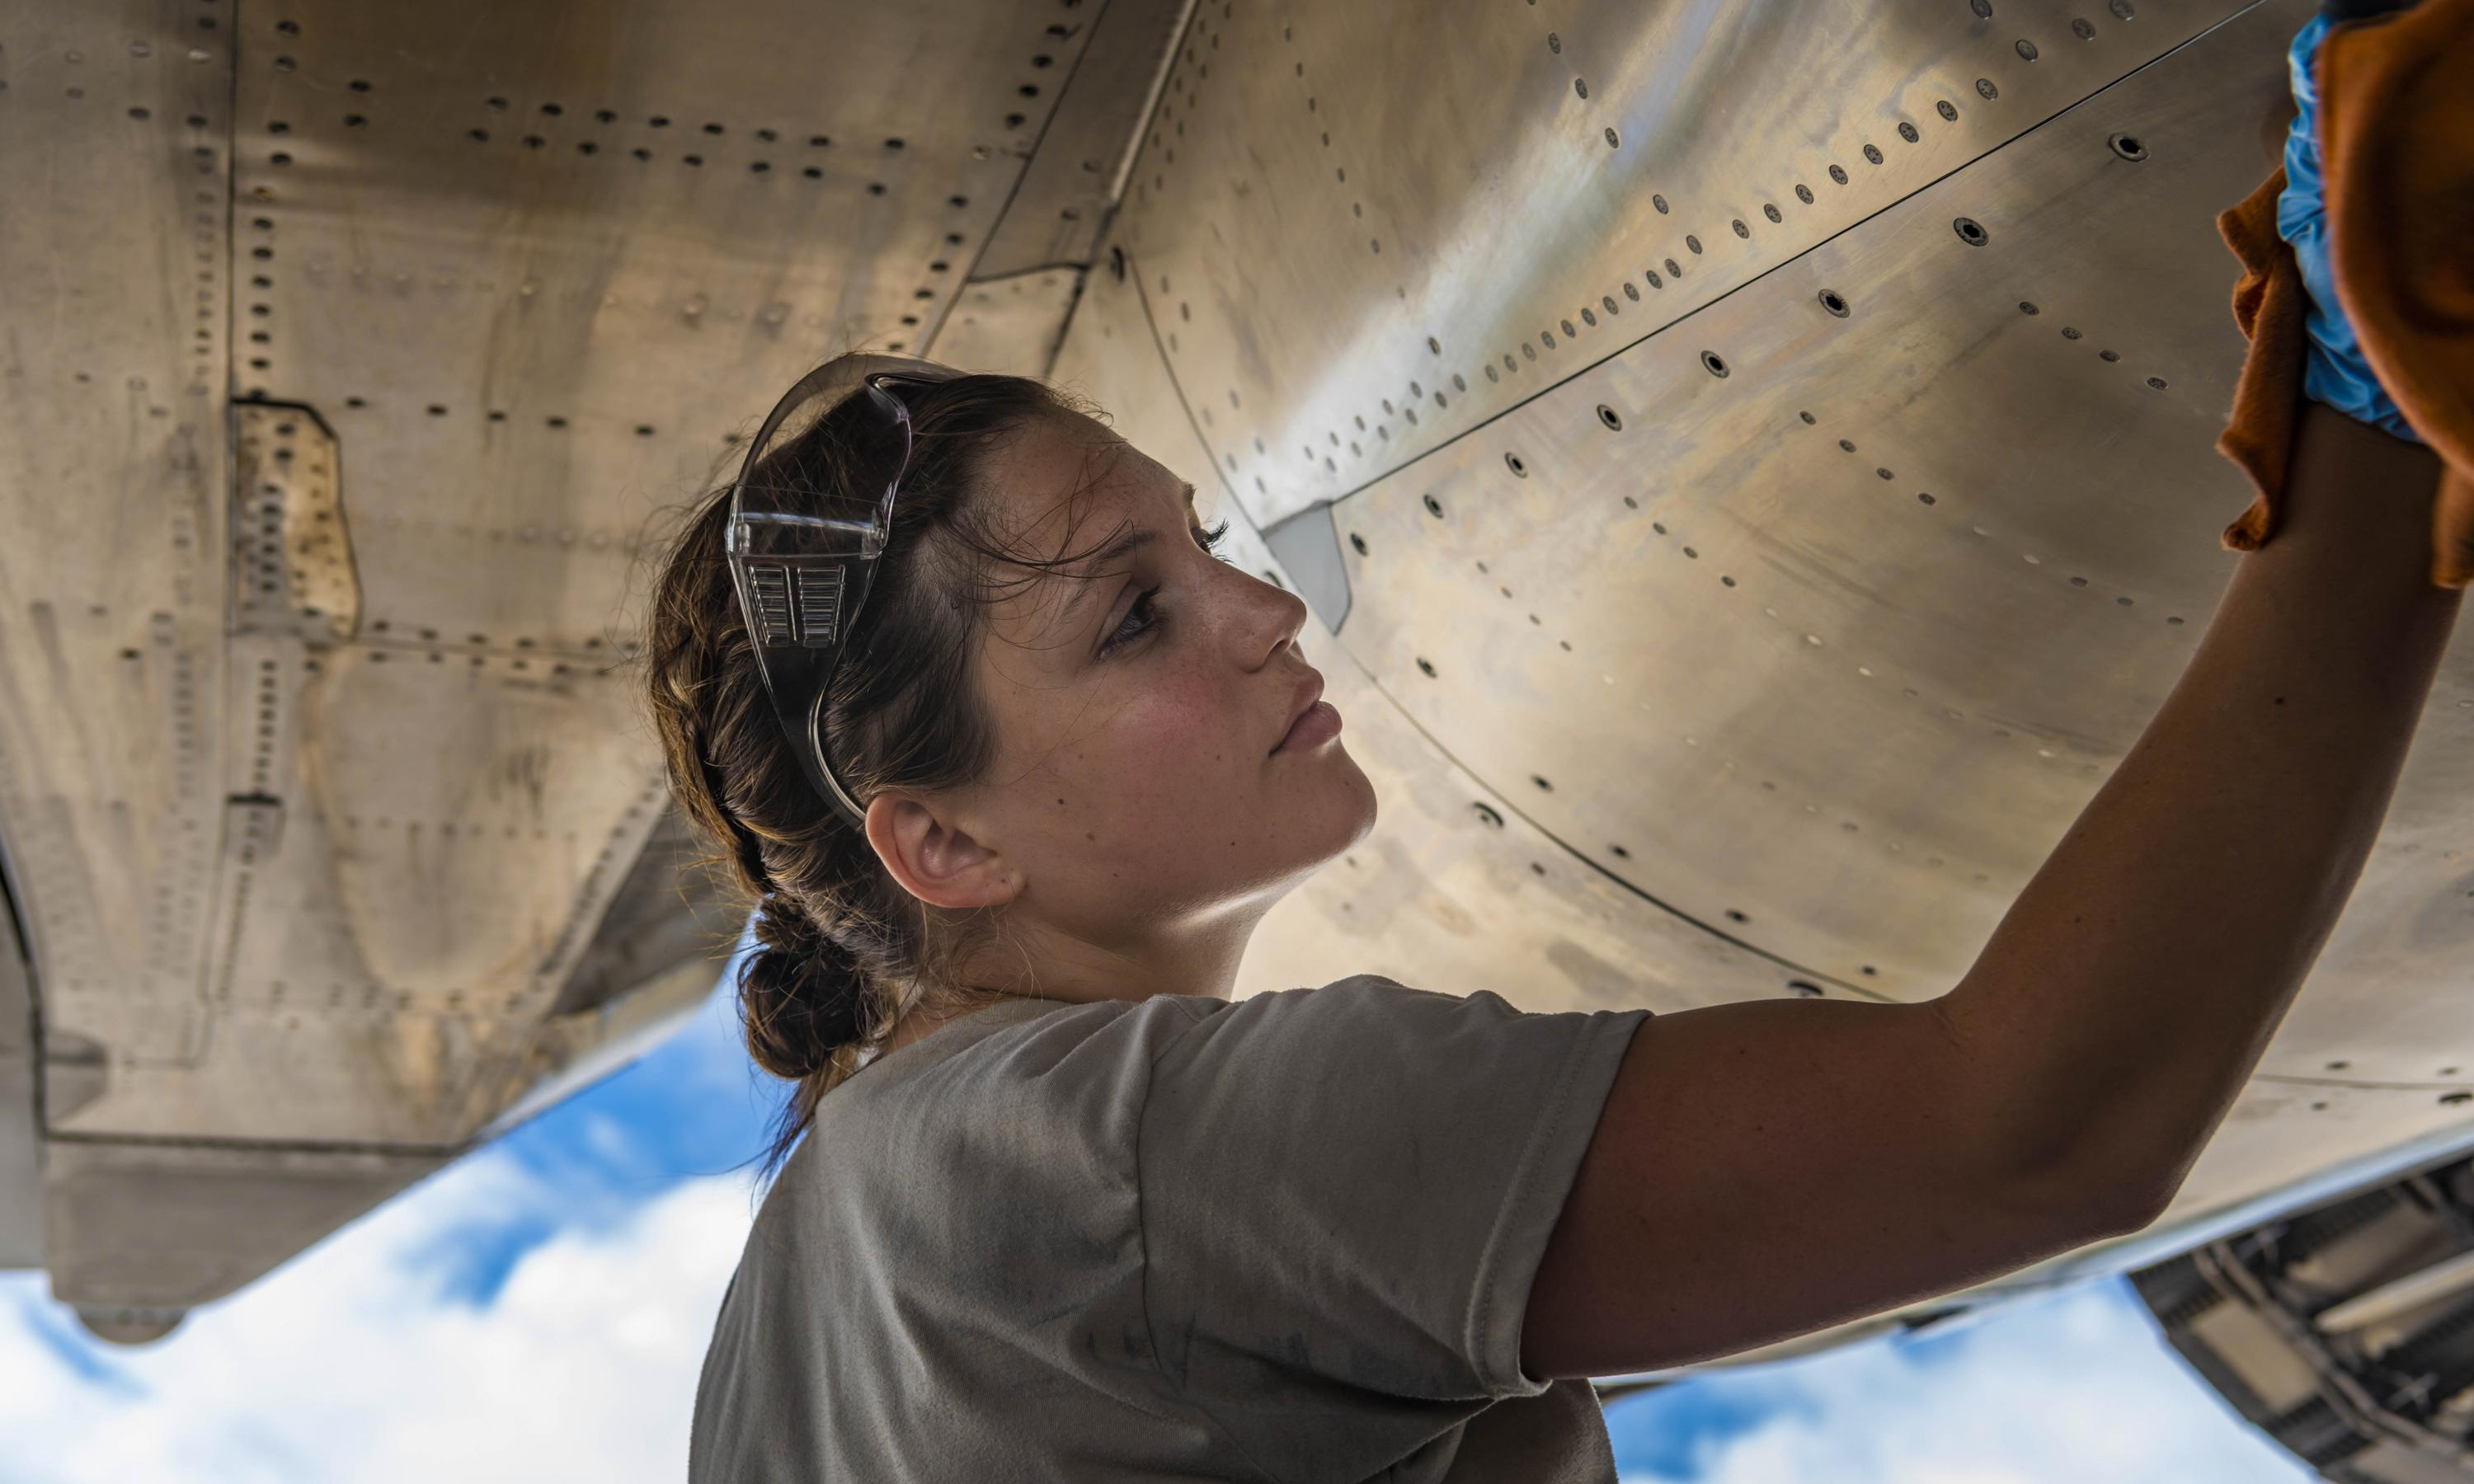 Airman cleans an aircraft during preflight inspections.